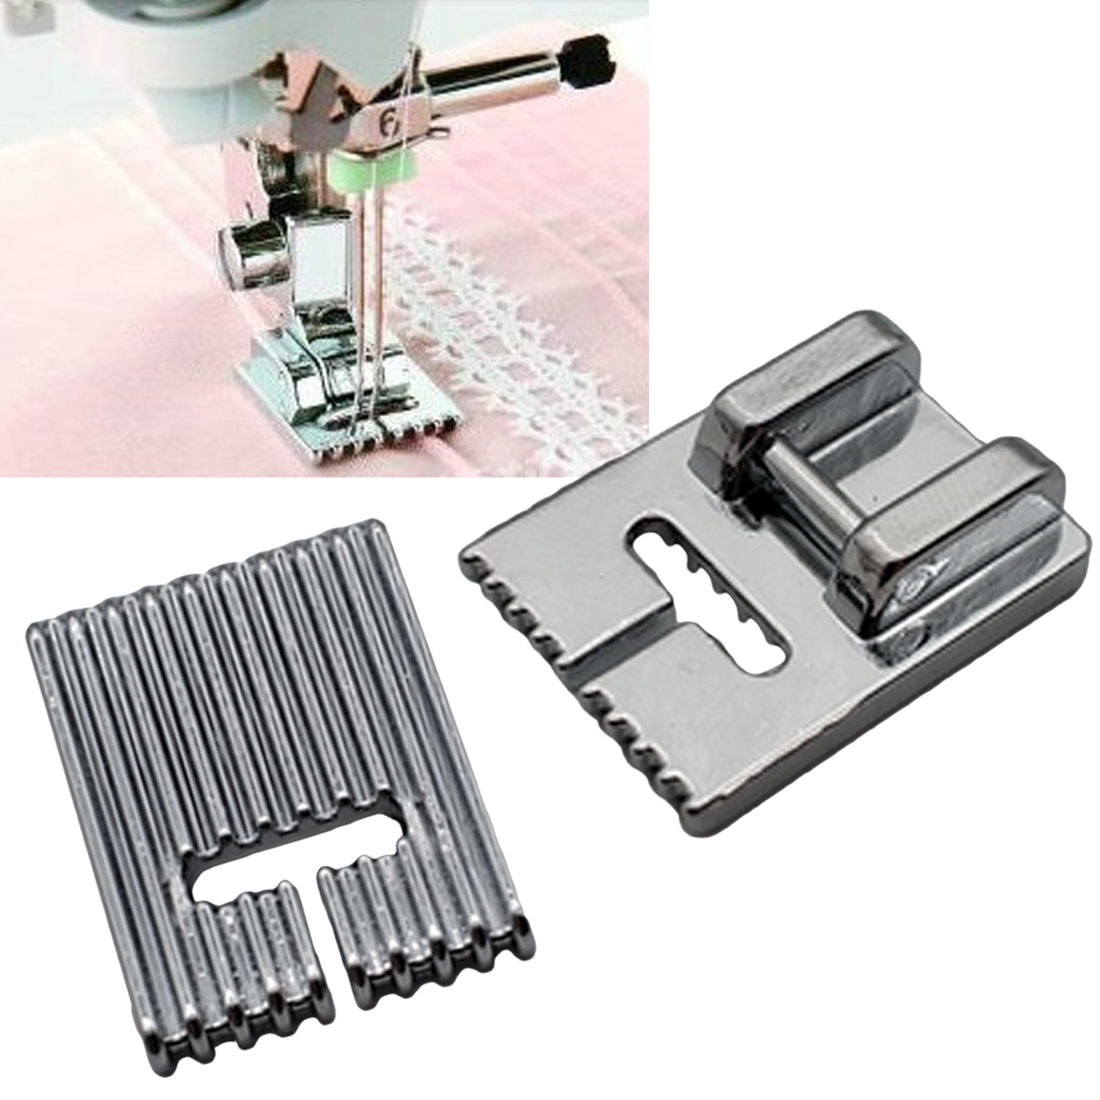 Home Supplies 5/7/9 Grooves Sewing Machine Foot Making Pleat Tank Presser Feet for Janome Singer etc Sewing Machine AccessoriesHome Supplies 5/7/9 Grooves Sewing Machine Foot Making Pleat Tank Presser Feet for Janome Singer etc Sewing Machine Accessories